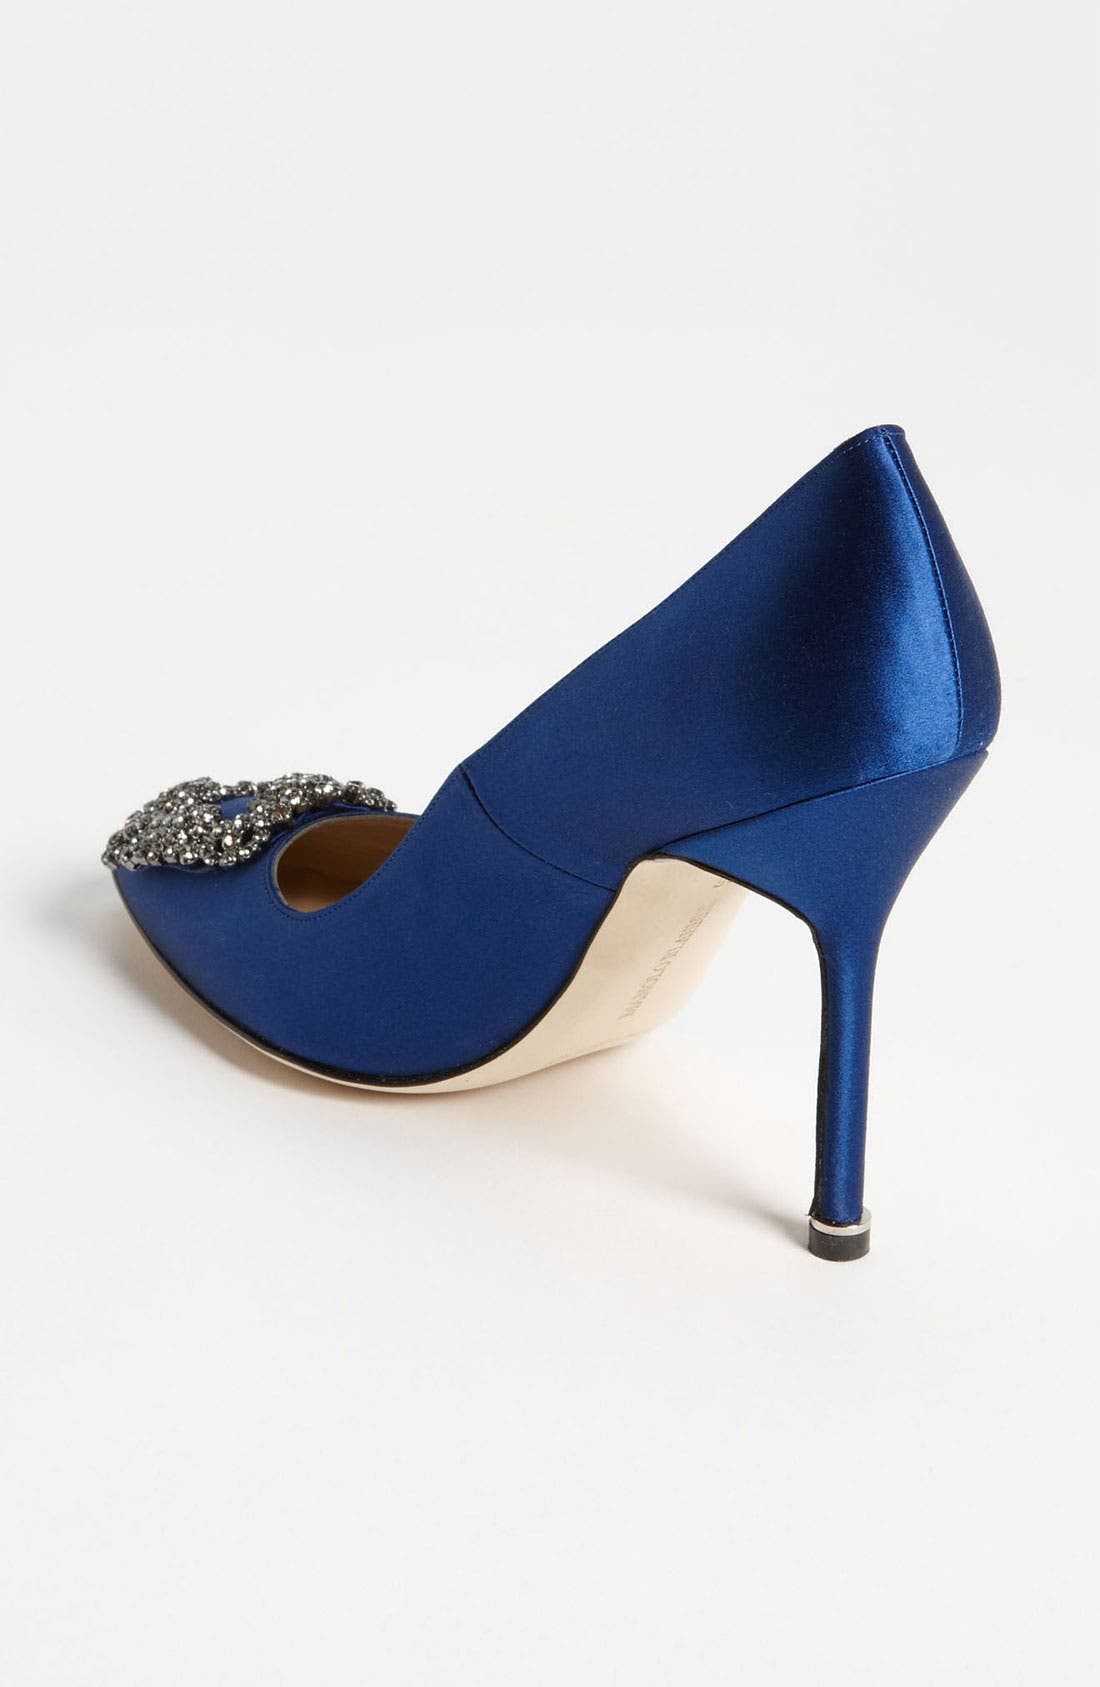 'Hangisi' Jewel Pump,                             Alternate thumbnail 2, color,                             Blue Satin